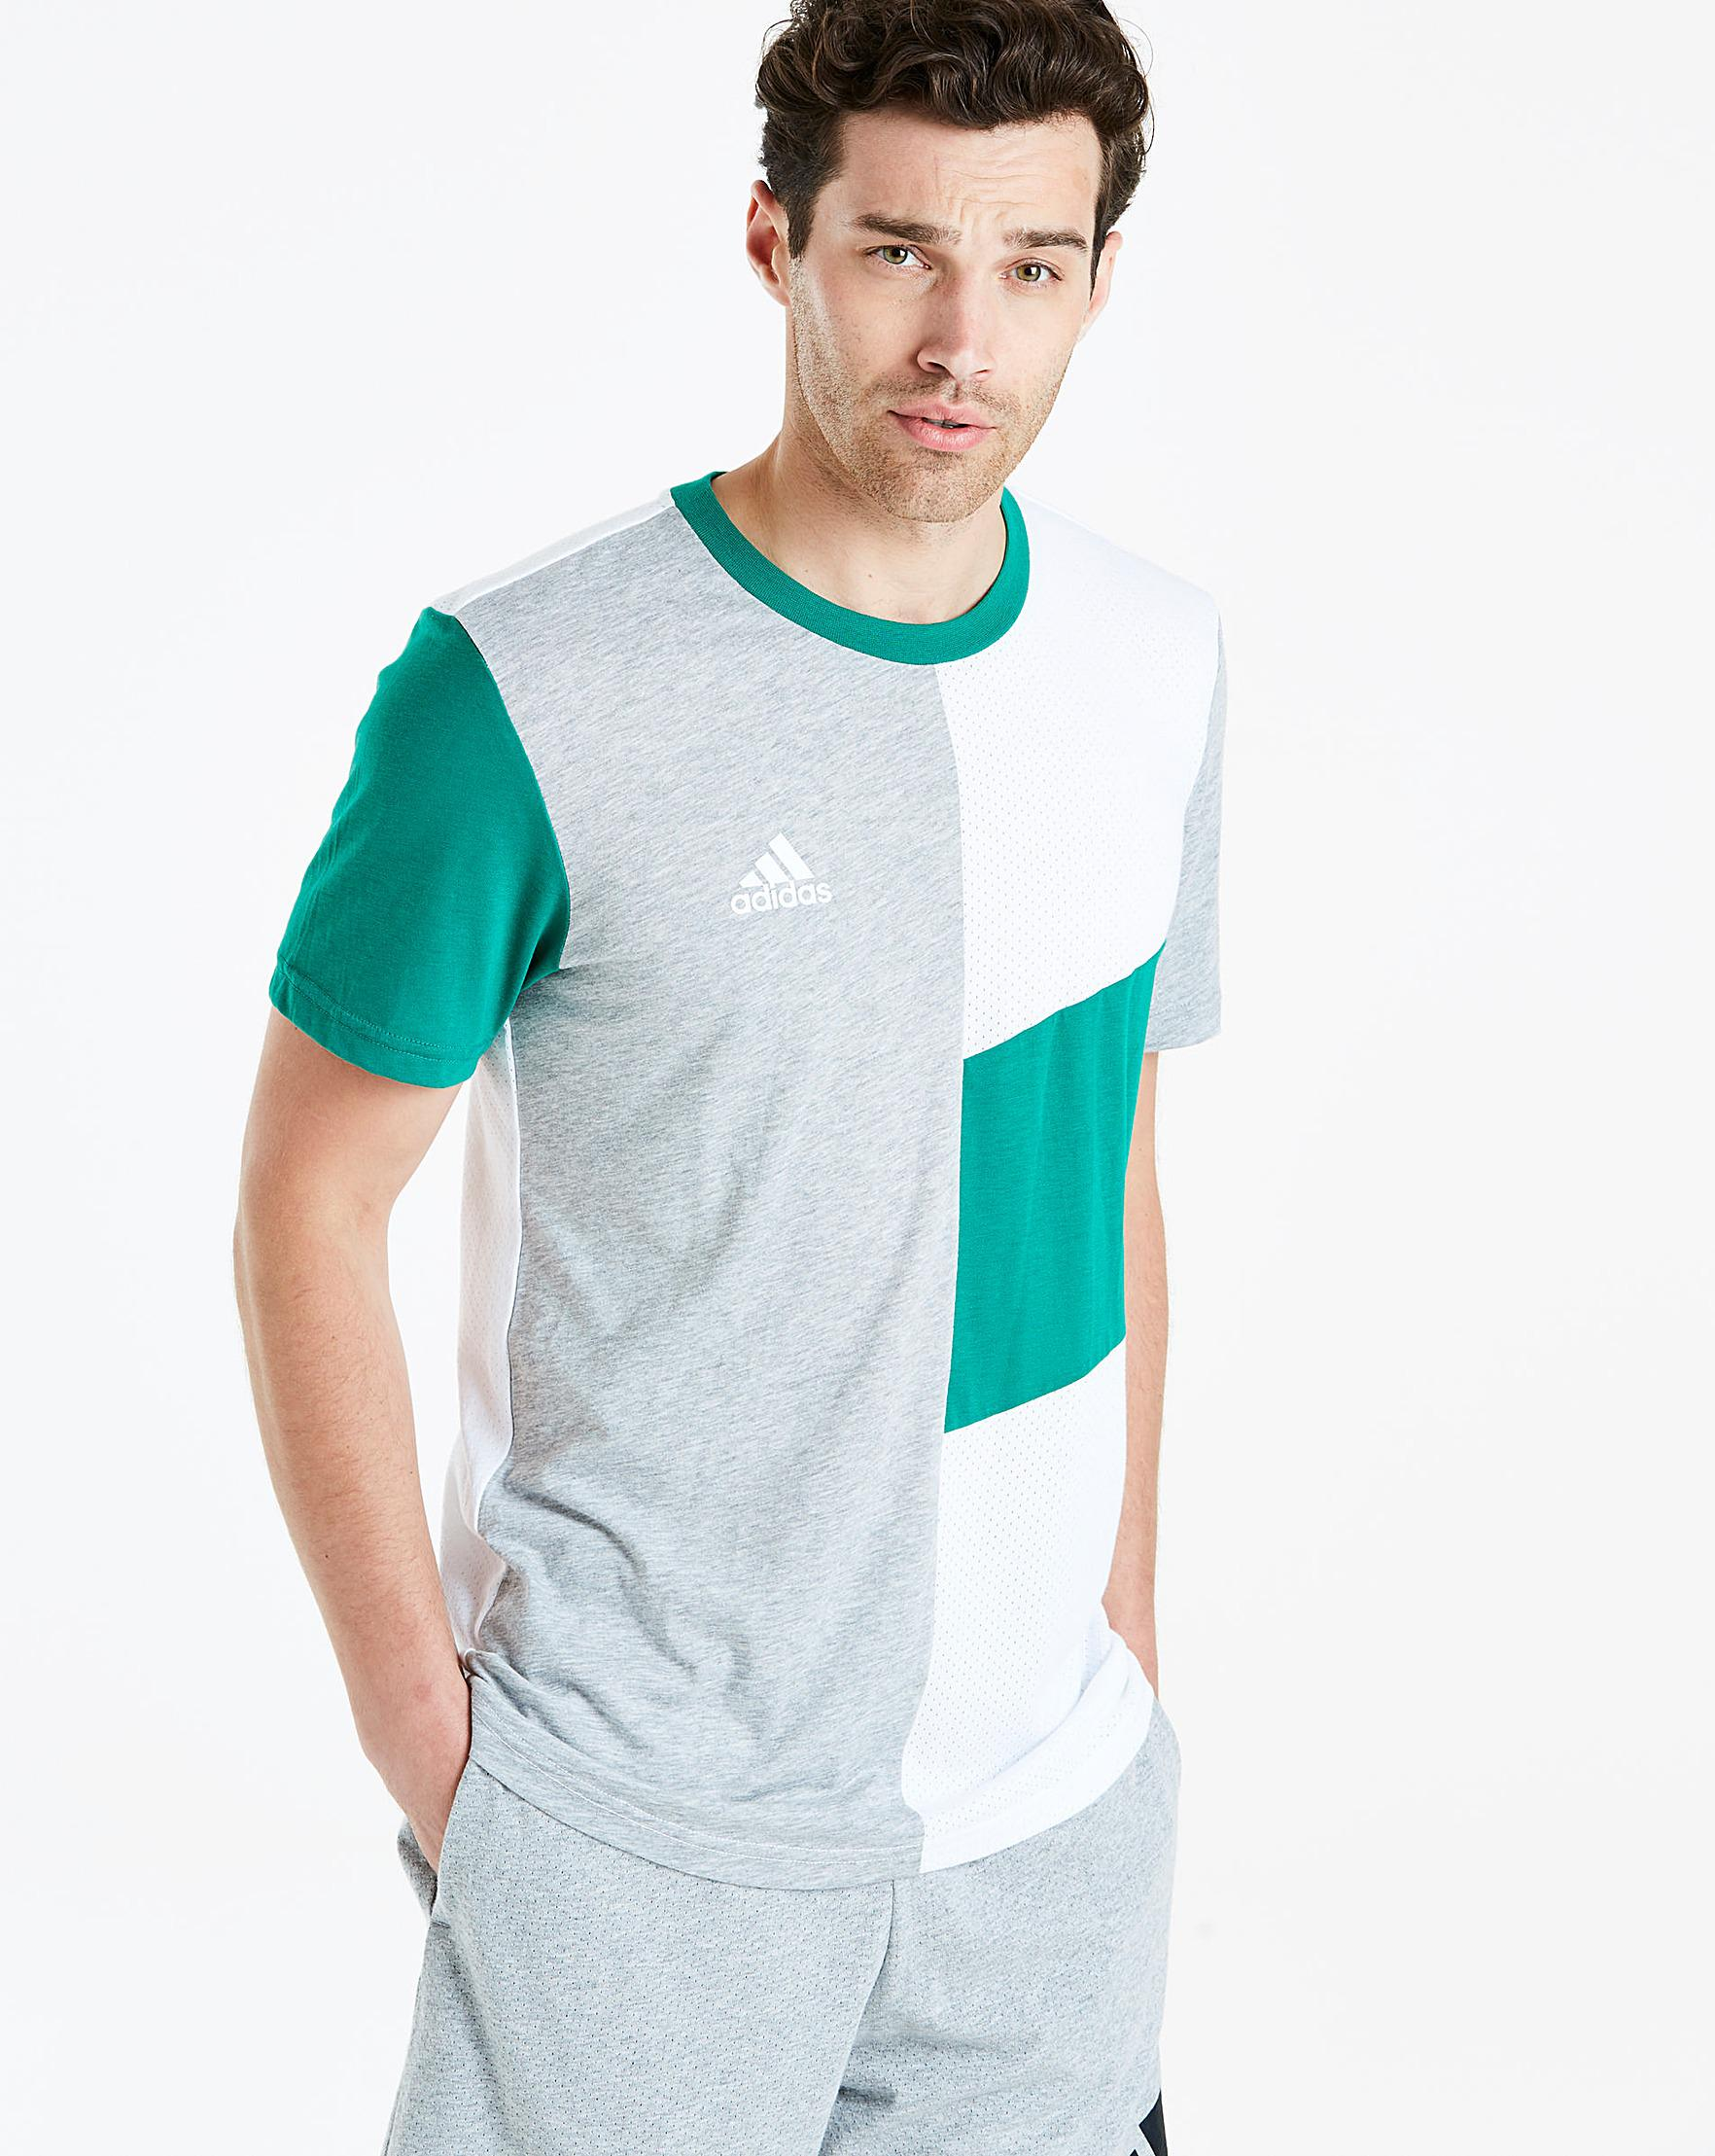 detailing e95ea aedab Adidas Block Tee in Green for Men - Lyst